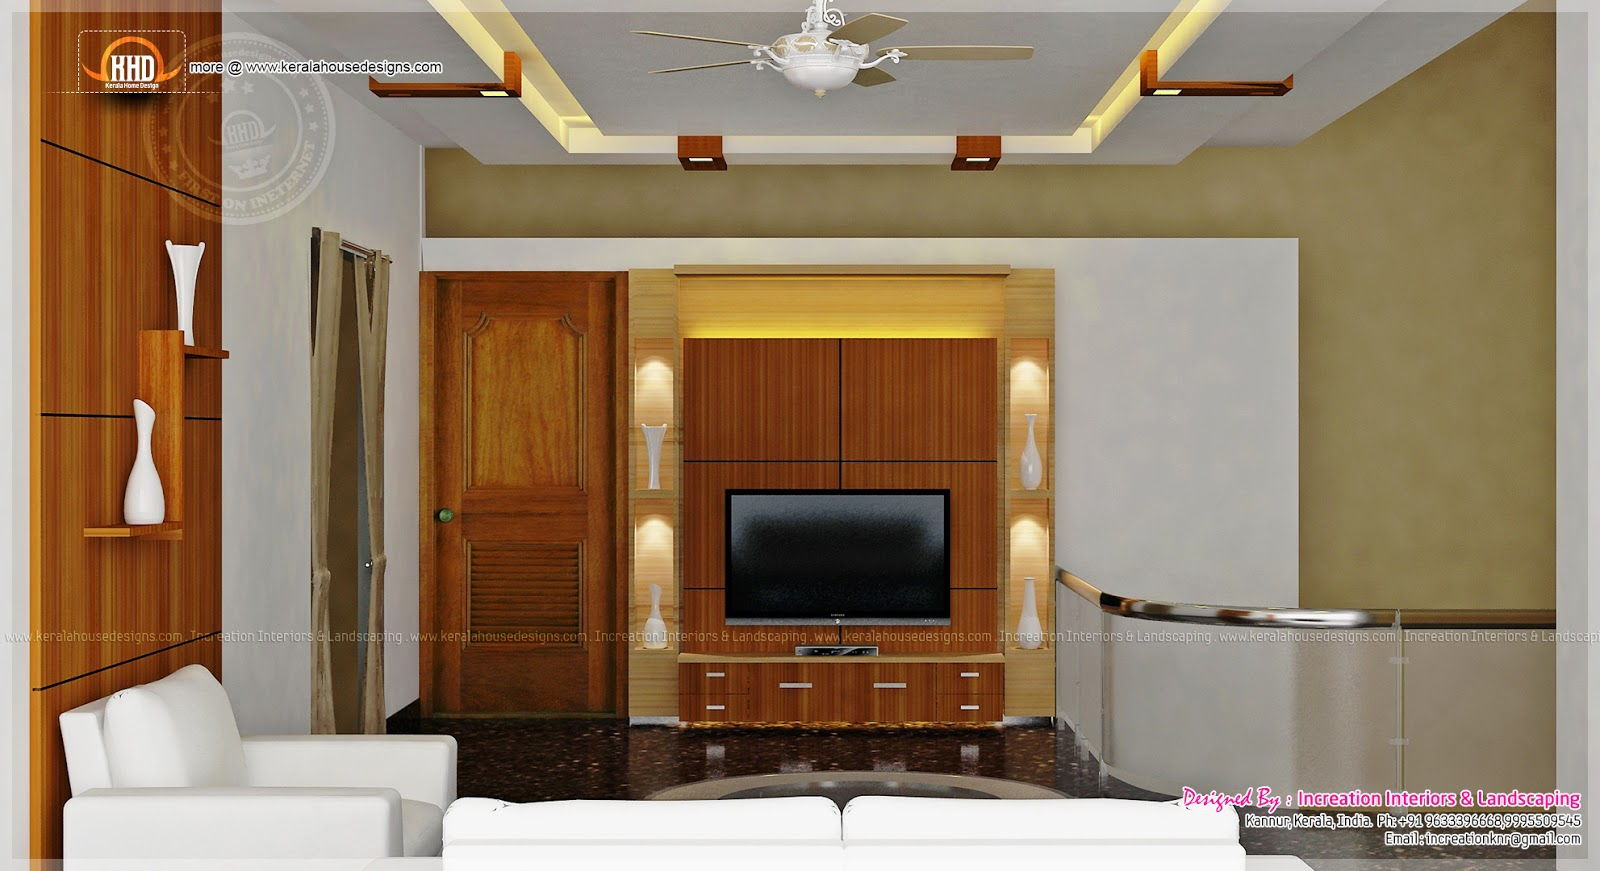 Home interior designs by increation kerala home design - Home interior design images india ...